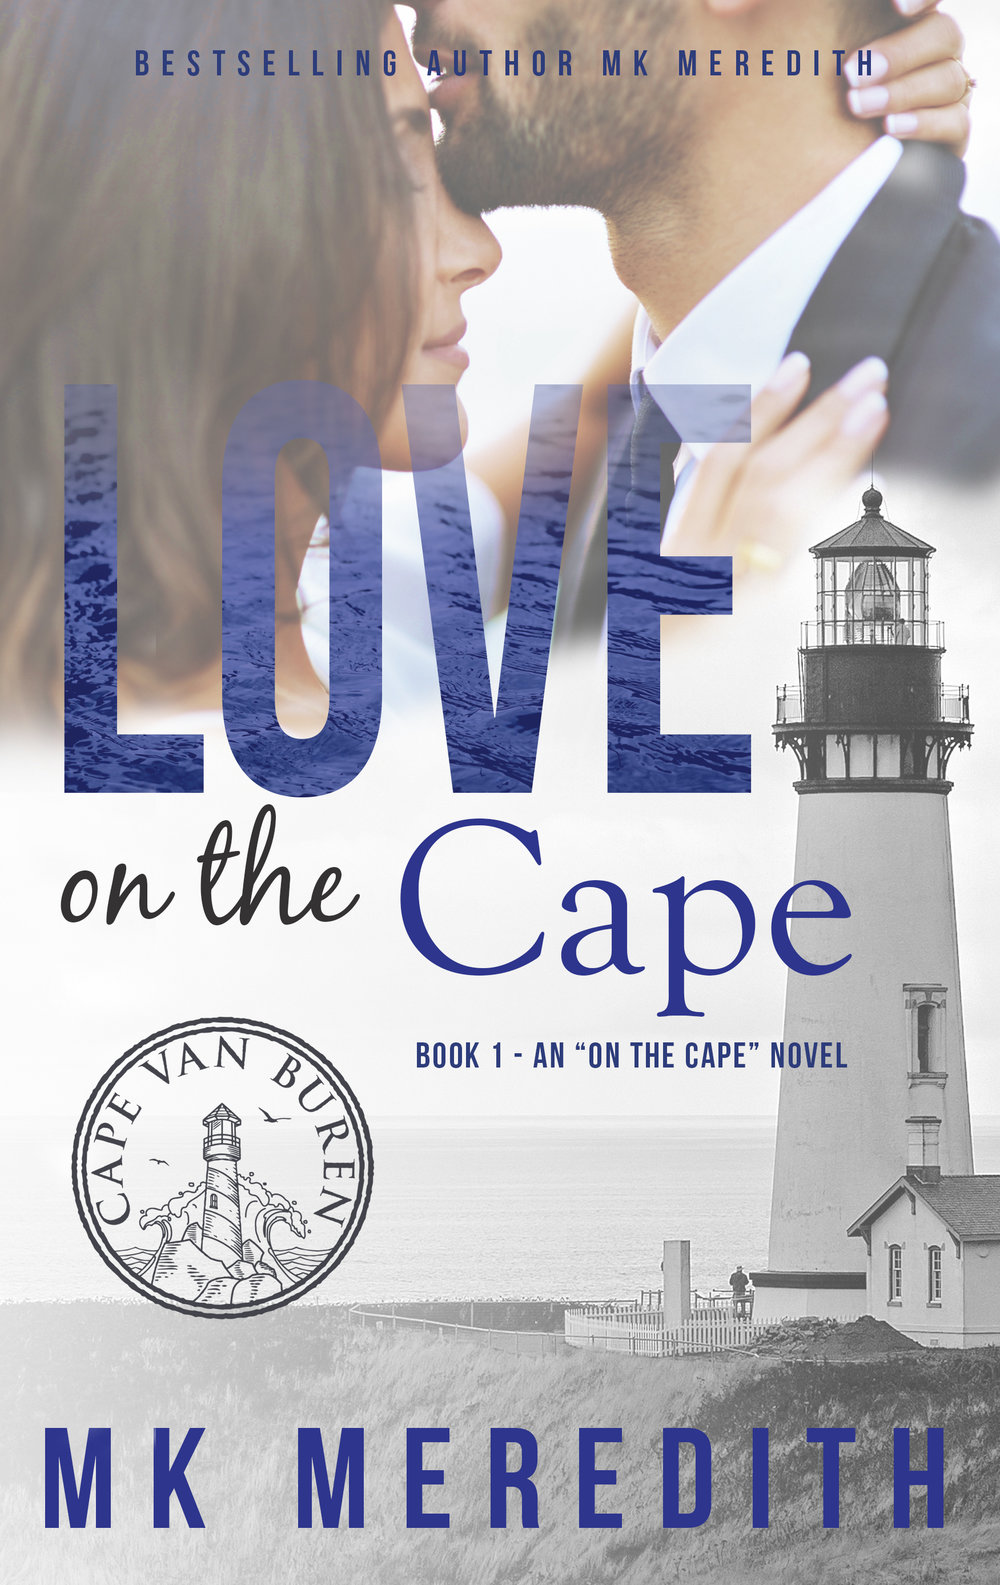 MK Meredith Love on the Cape - Kindle.jpg